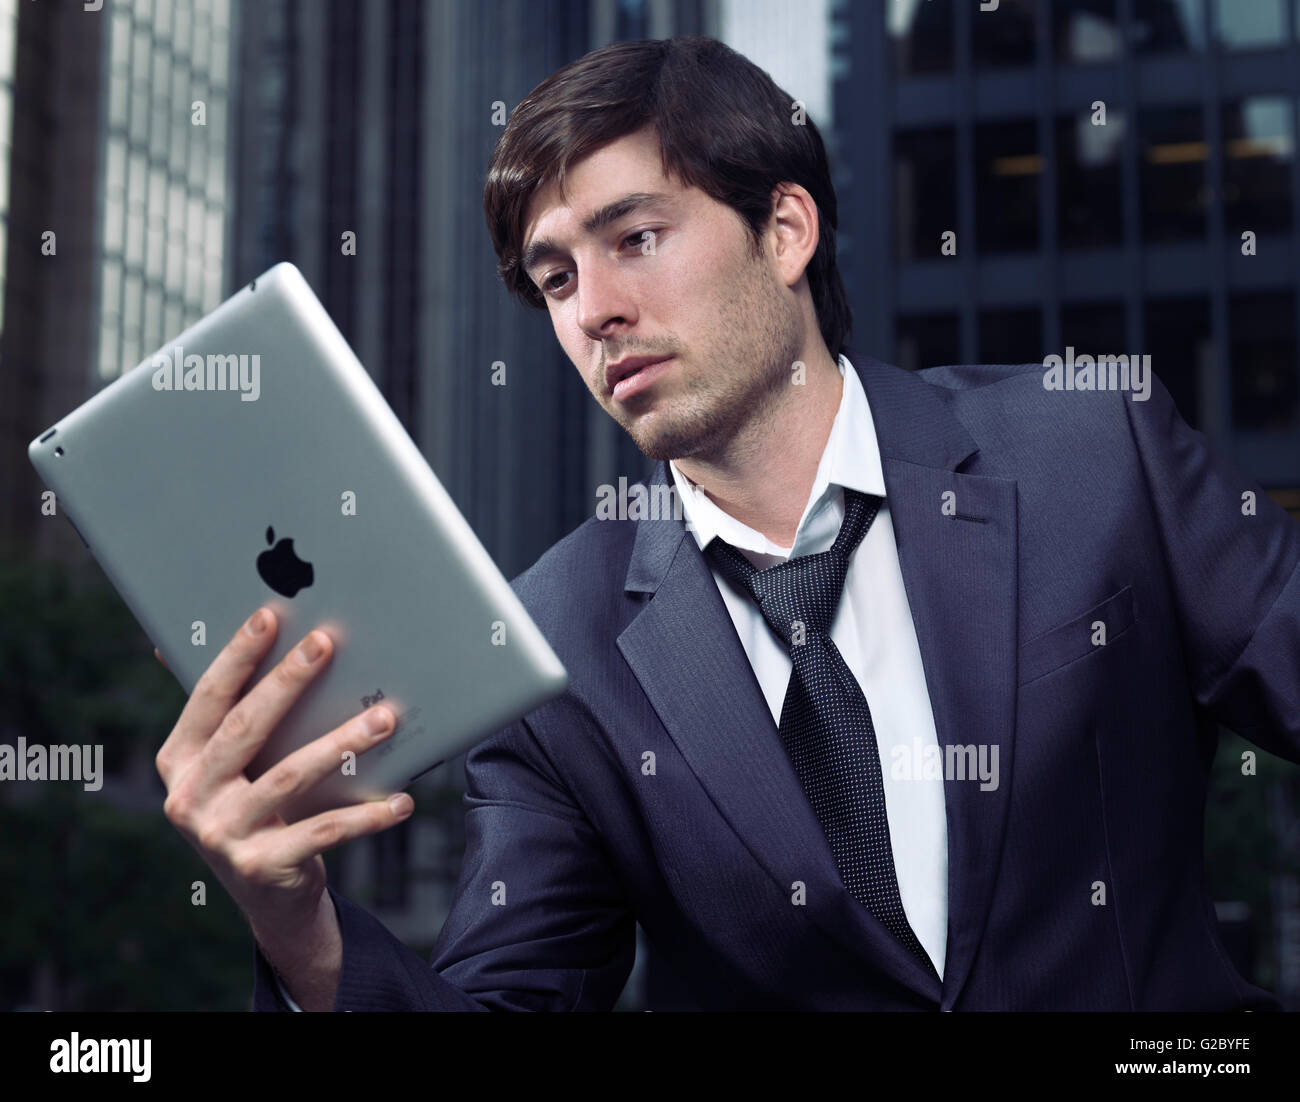 Businessman in a suit using Apple iPad tablet computer with downtown office buildings at back, Toronto, Ontario - Stock Image